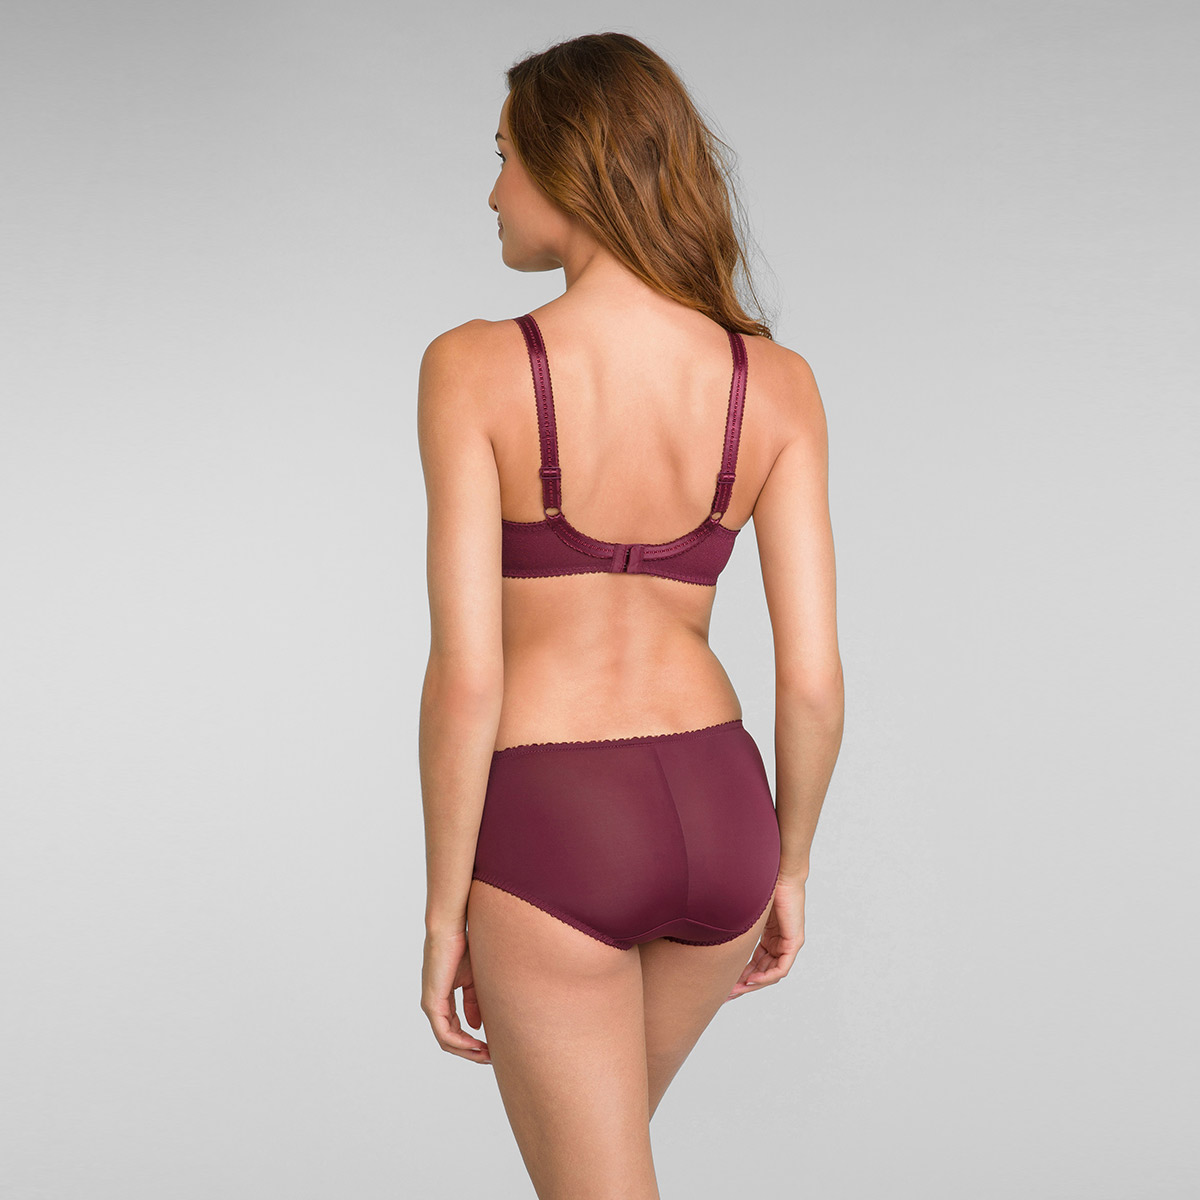 Full Cup Lace Bra in Dark Bordeaux Classic Lace Support, , PLAYTEX